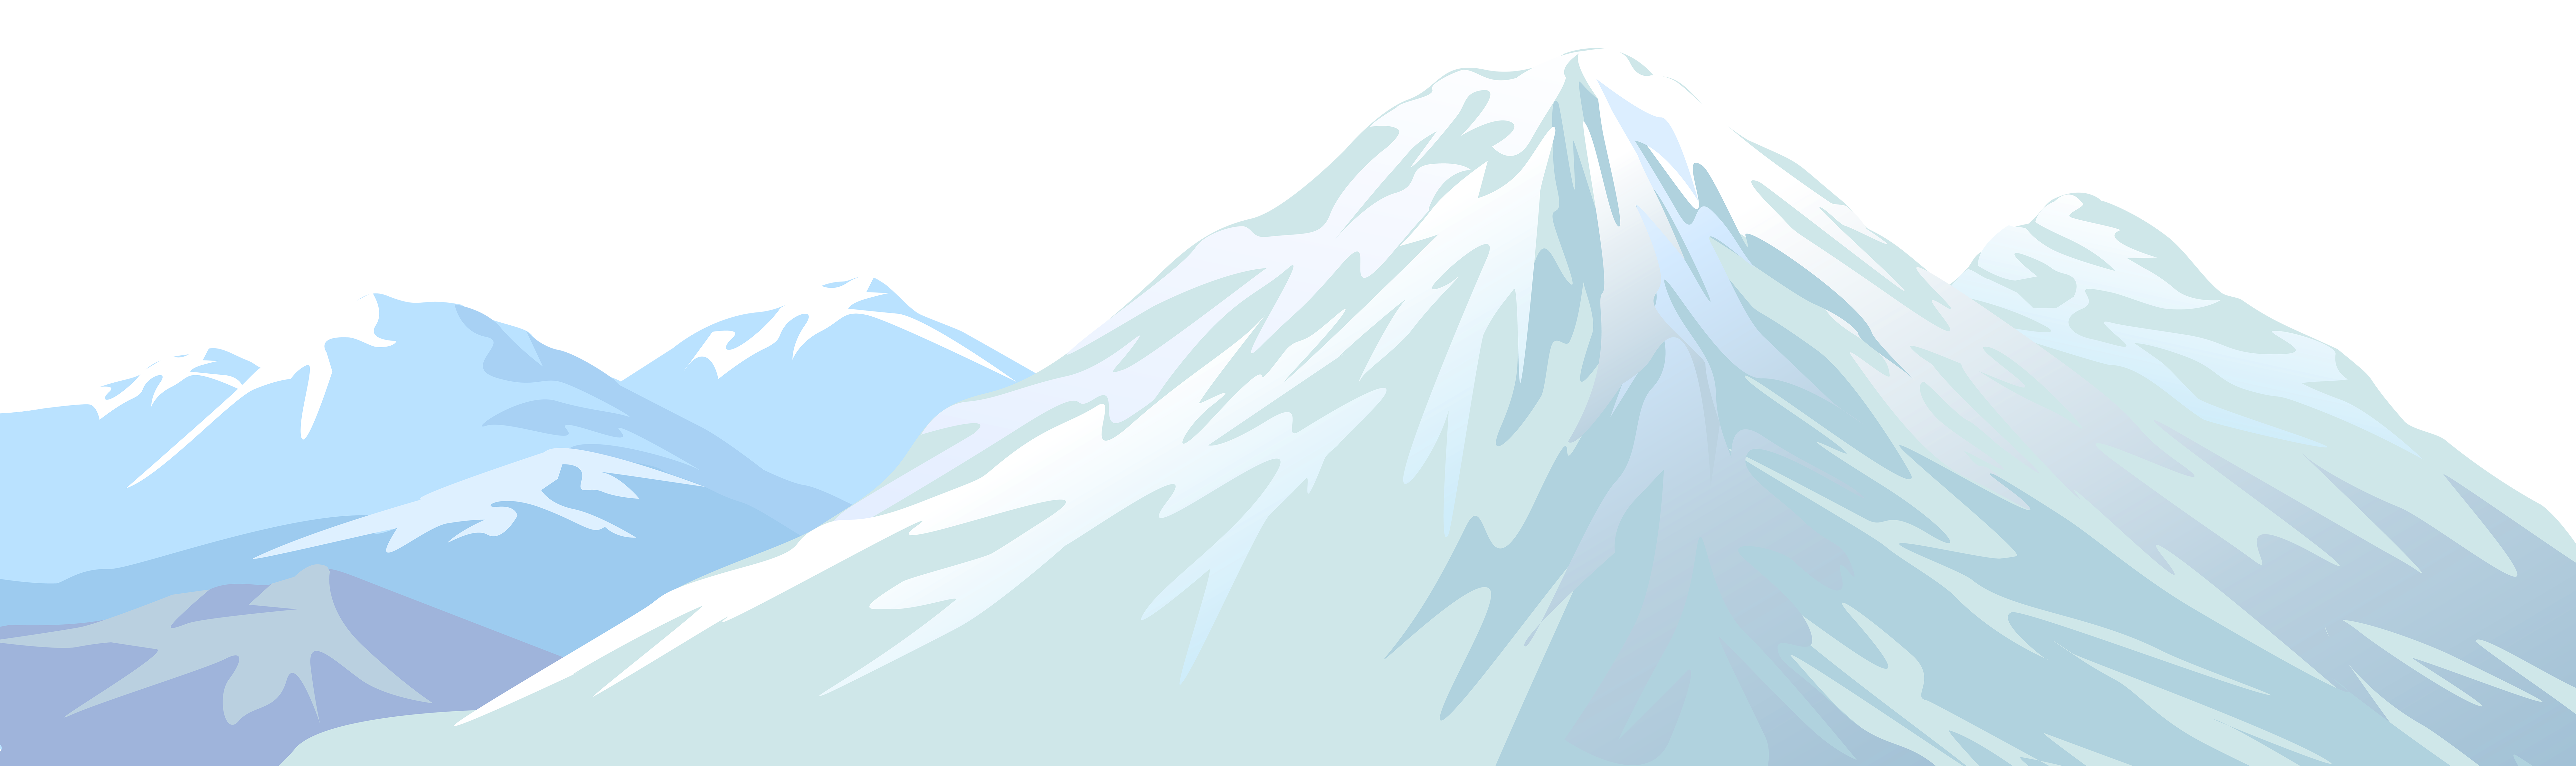 Winter Snowy Mountain Transparent PNG Clip Art Image.